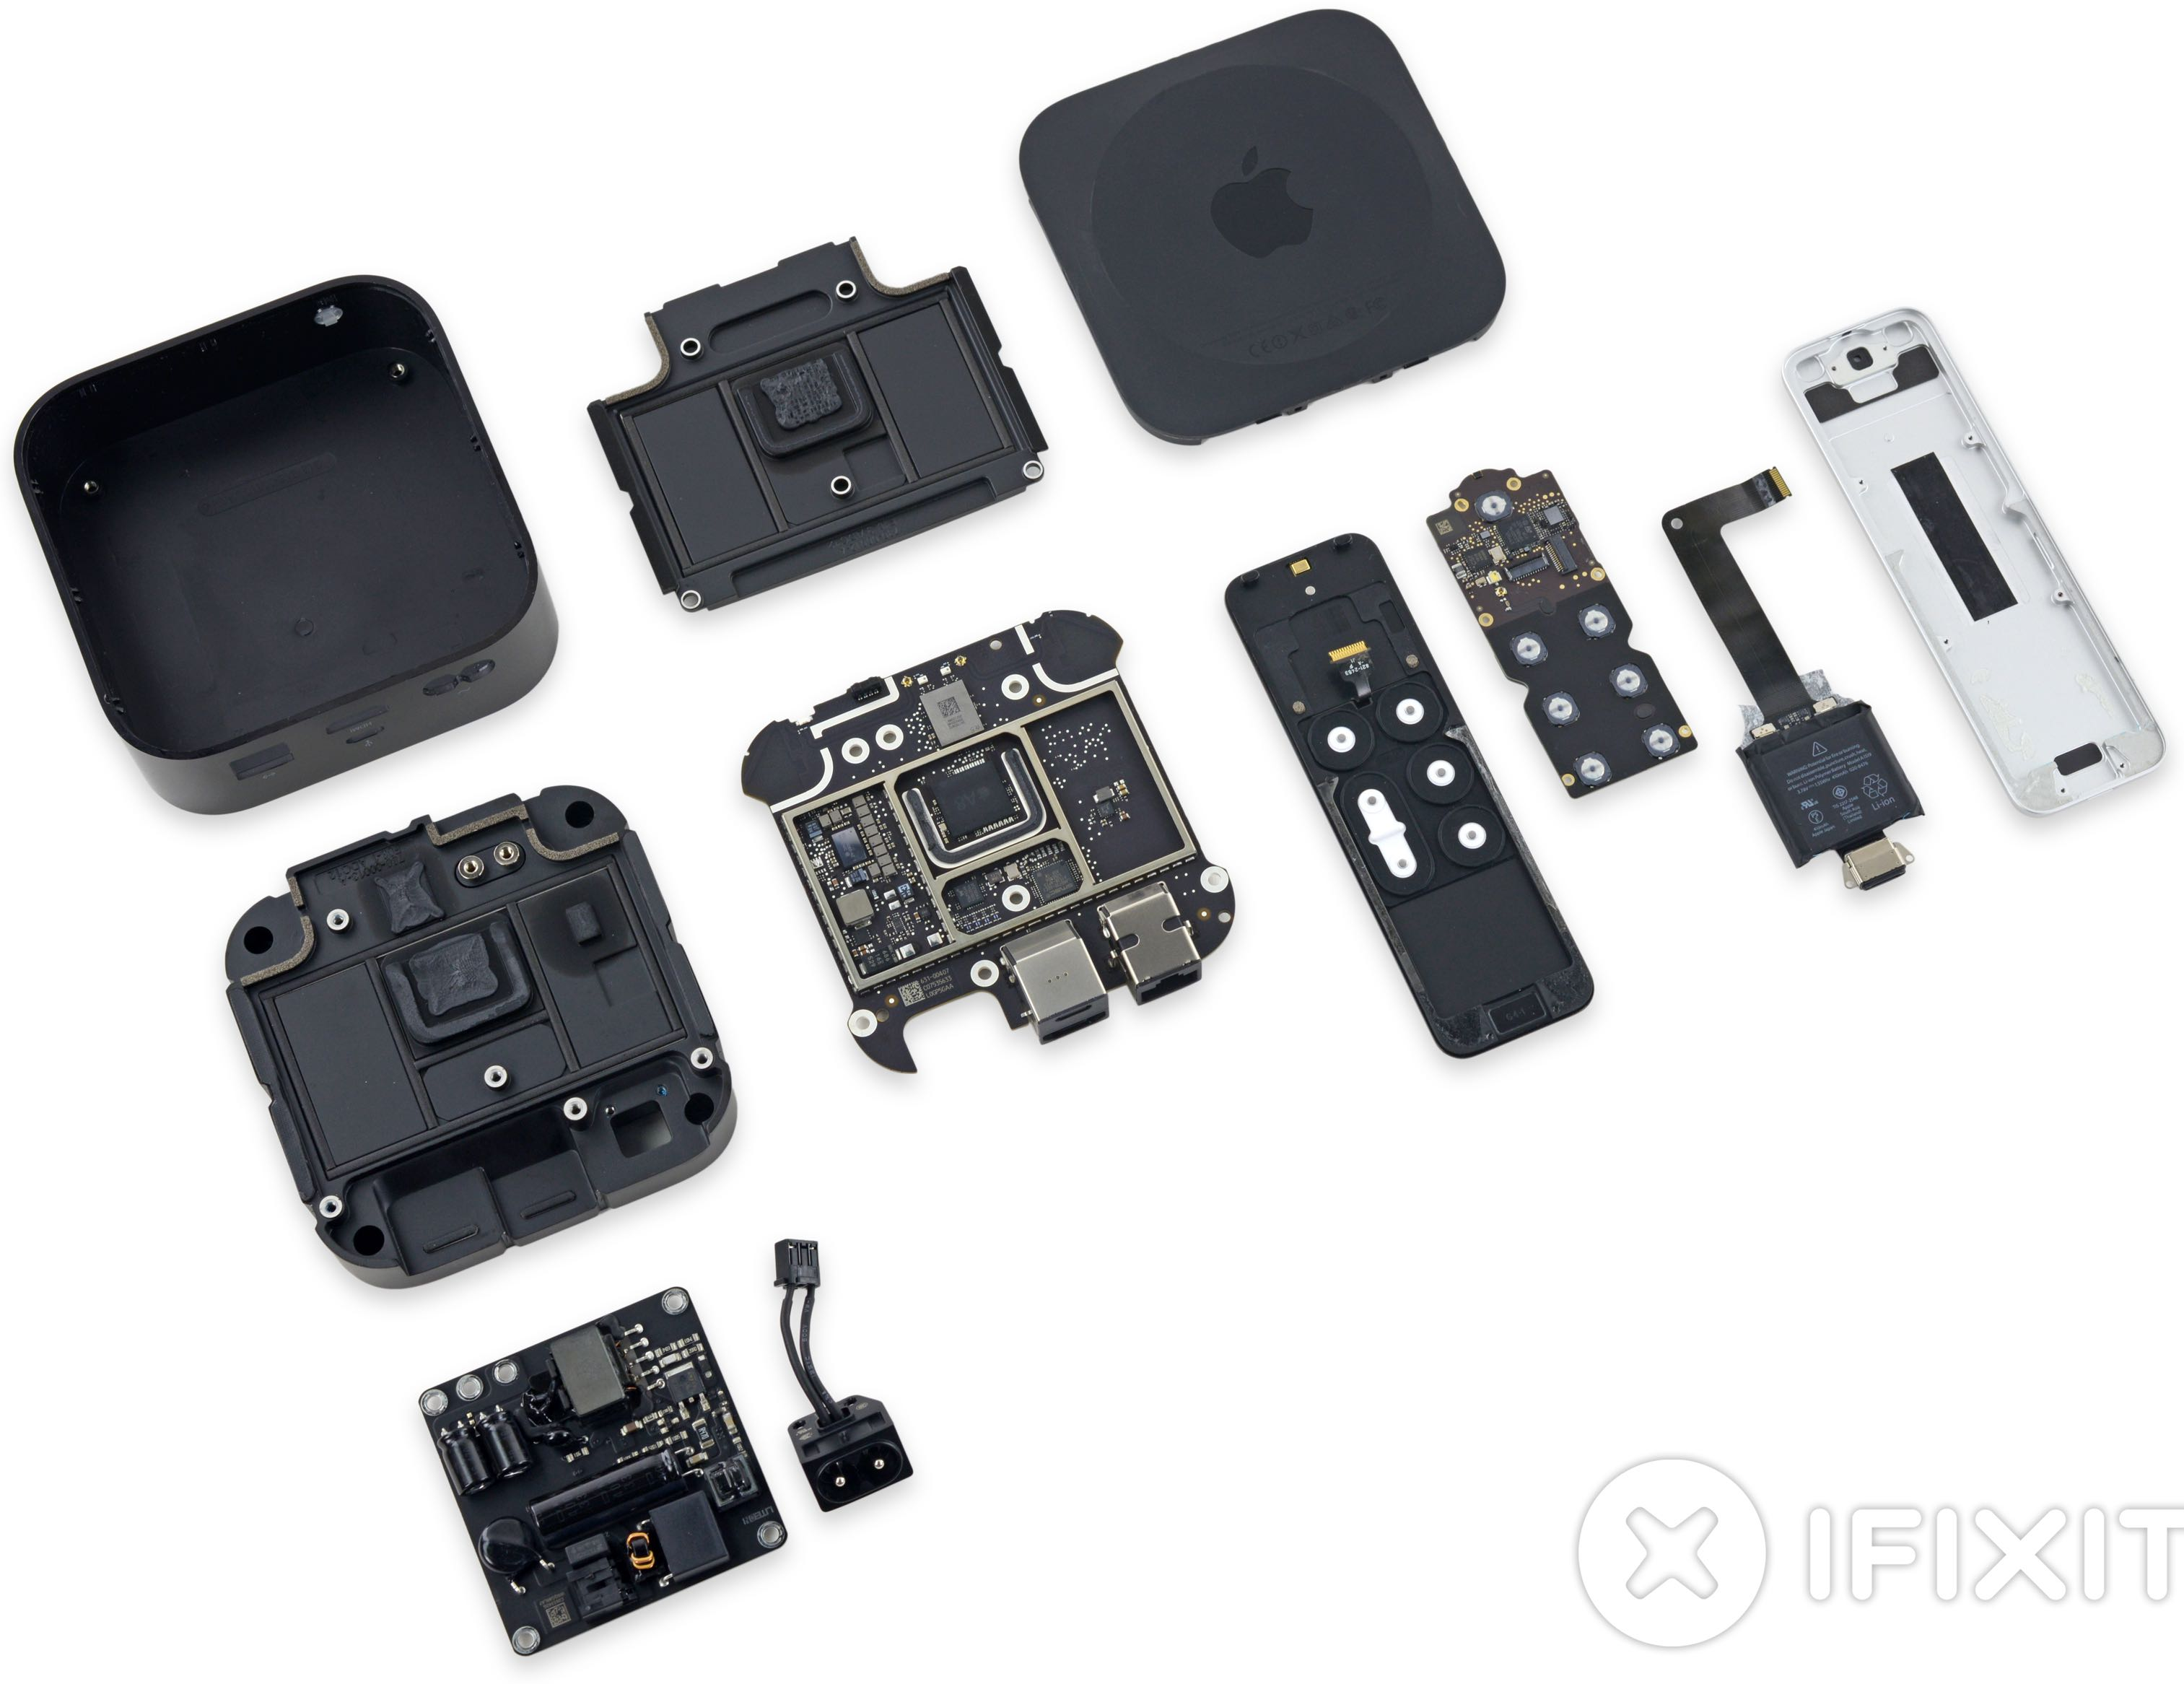 iFixit teardown Apple TV 4 image 001